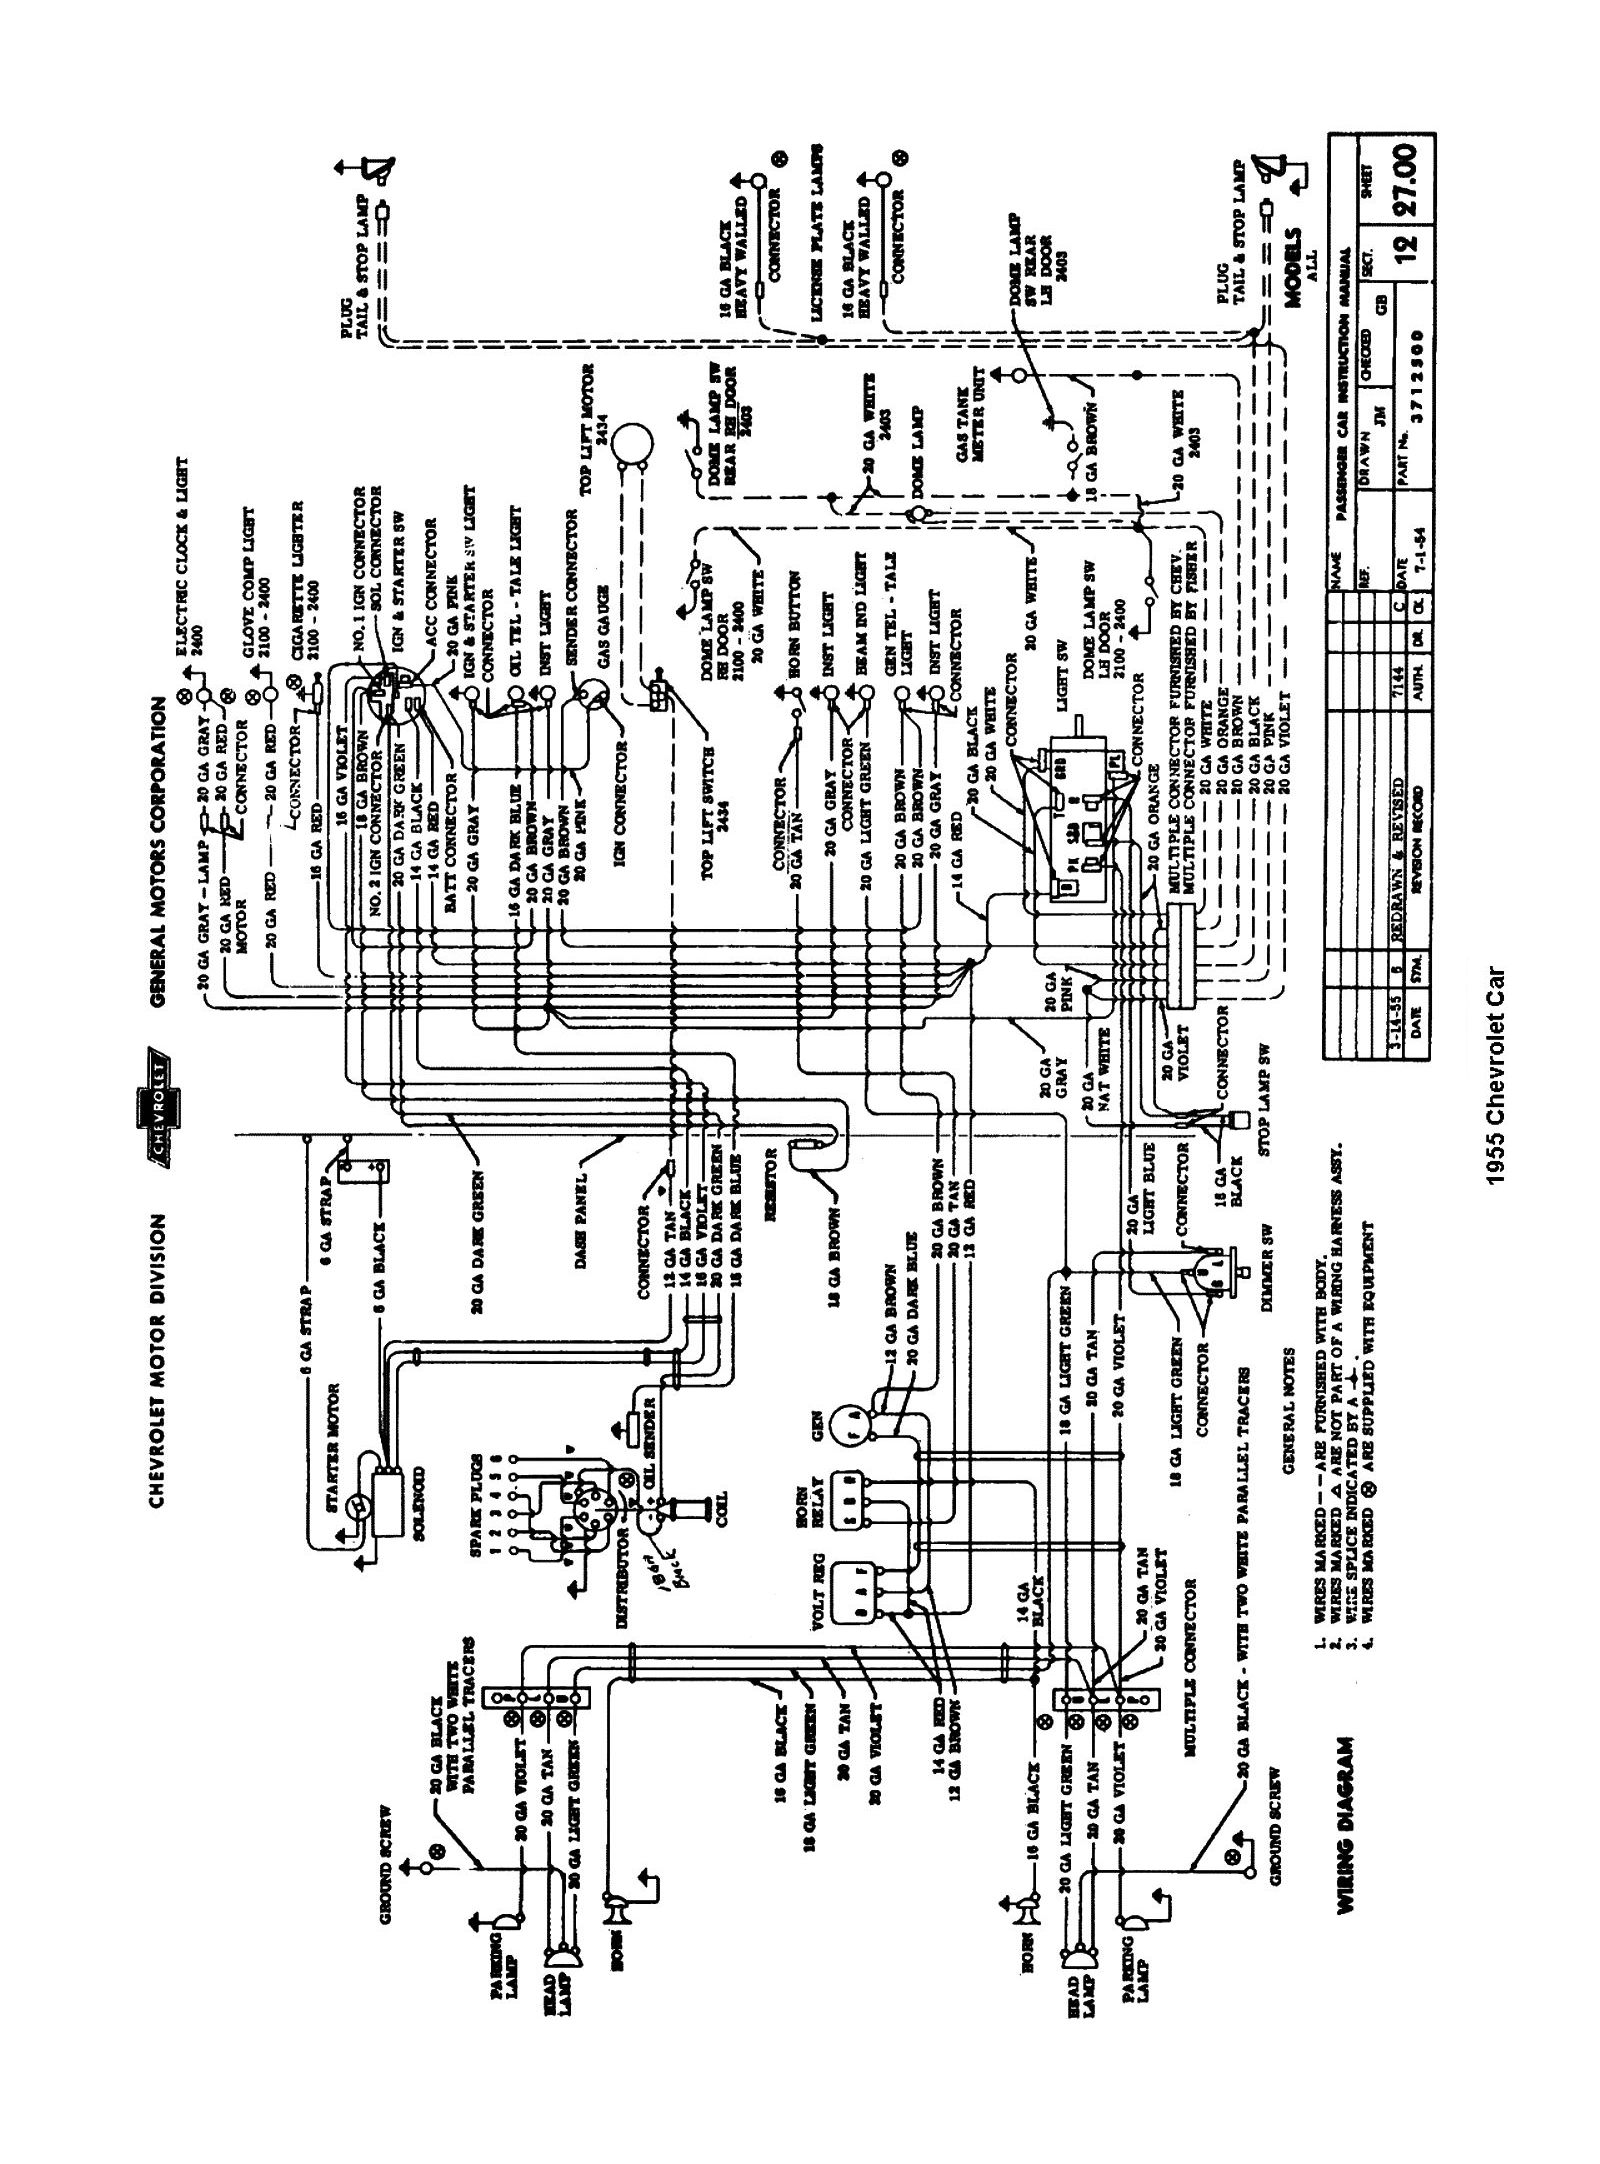 1955 chevrolet wiring diagram